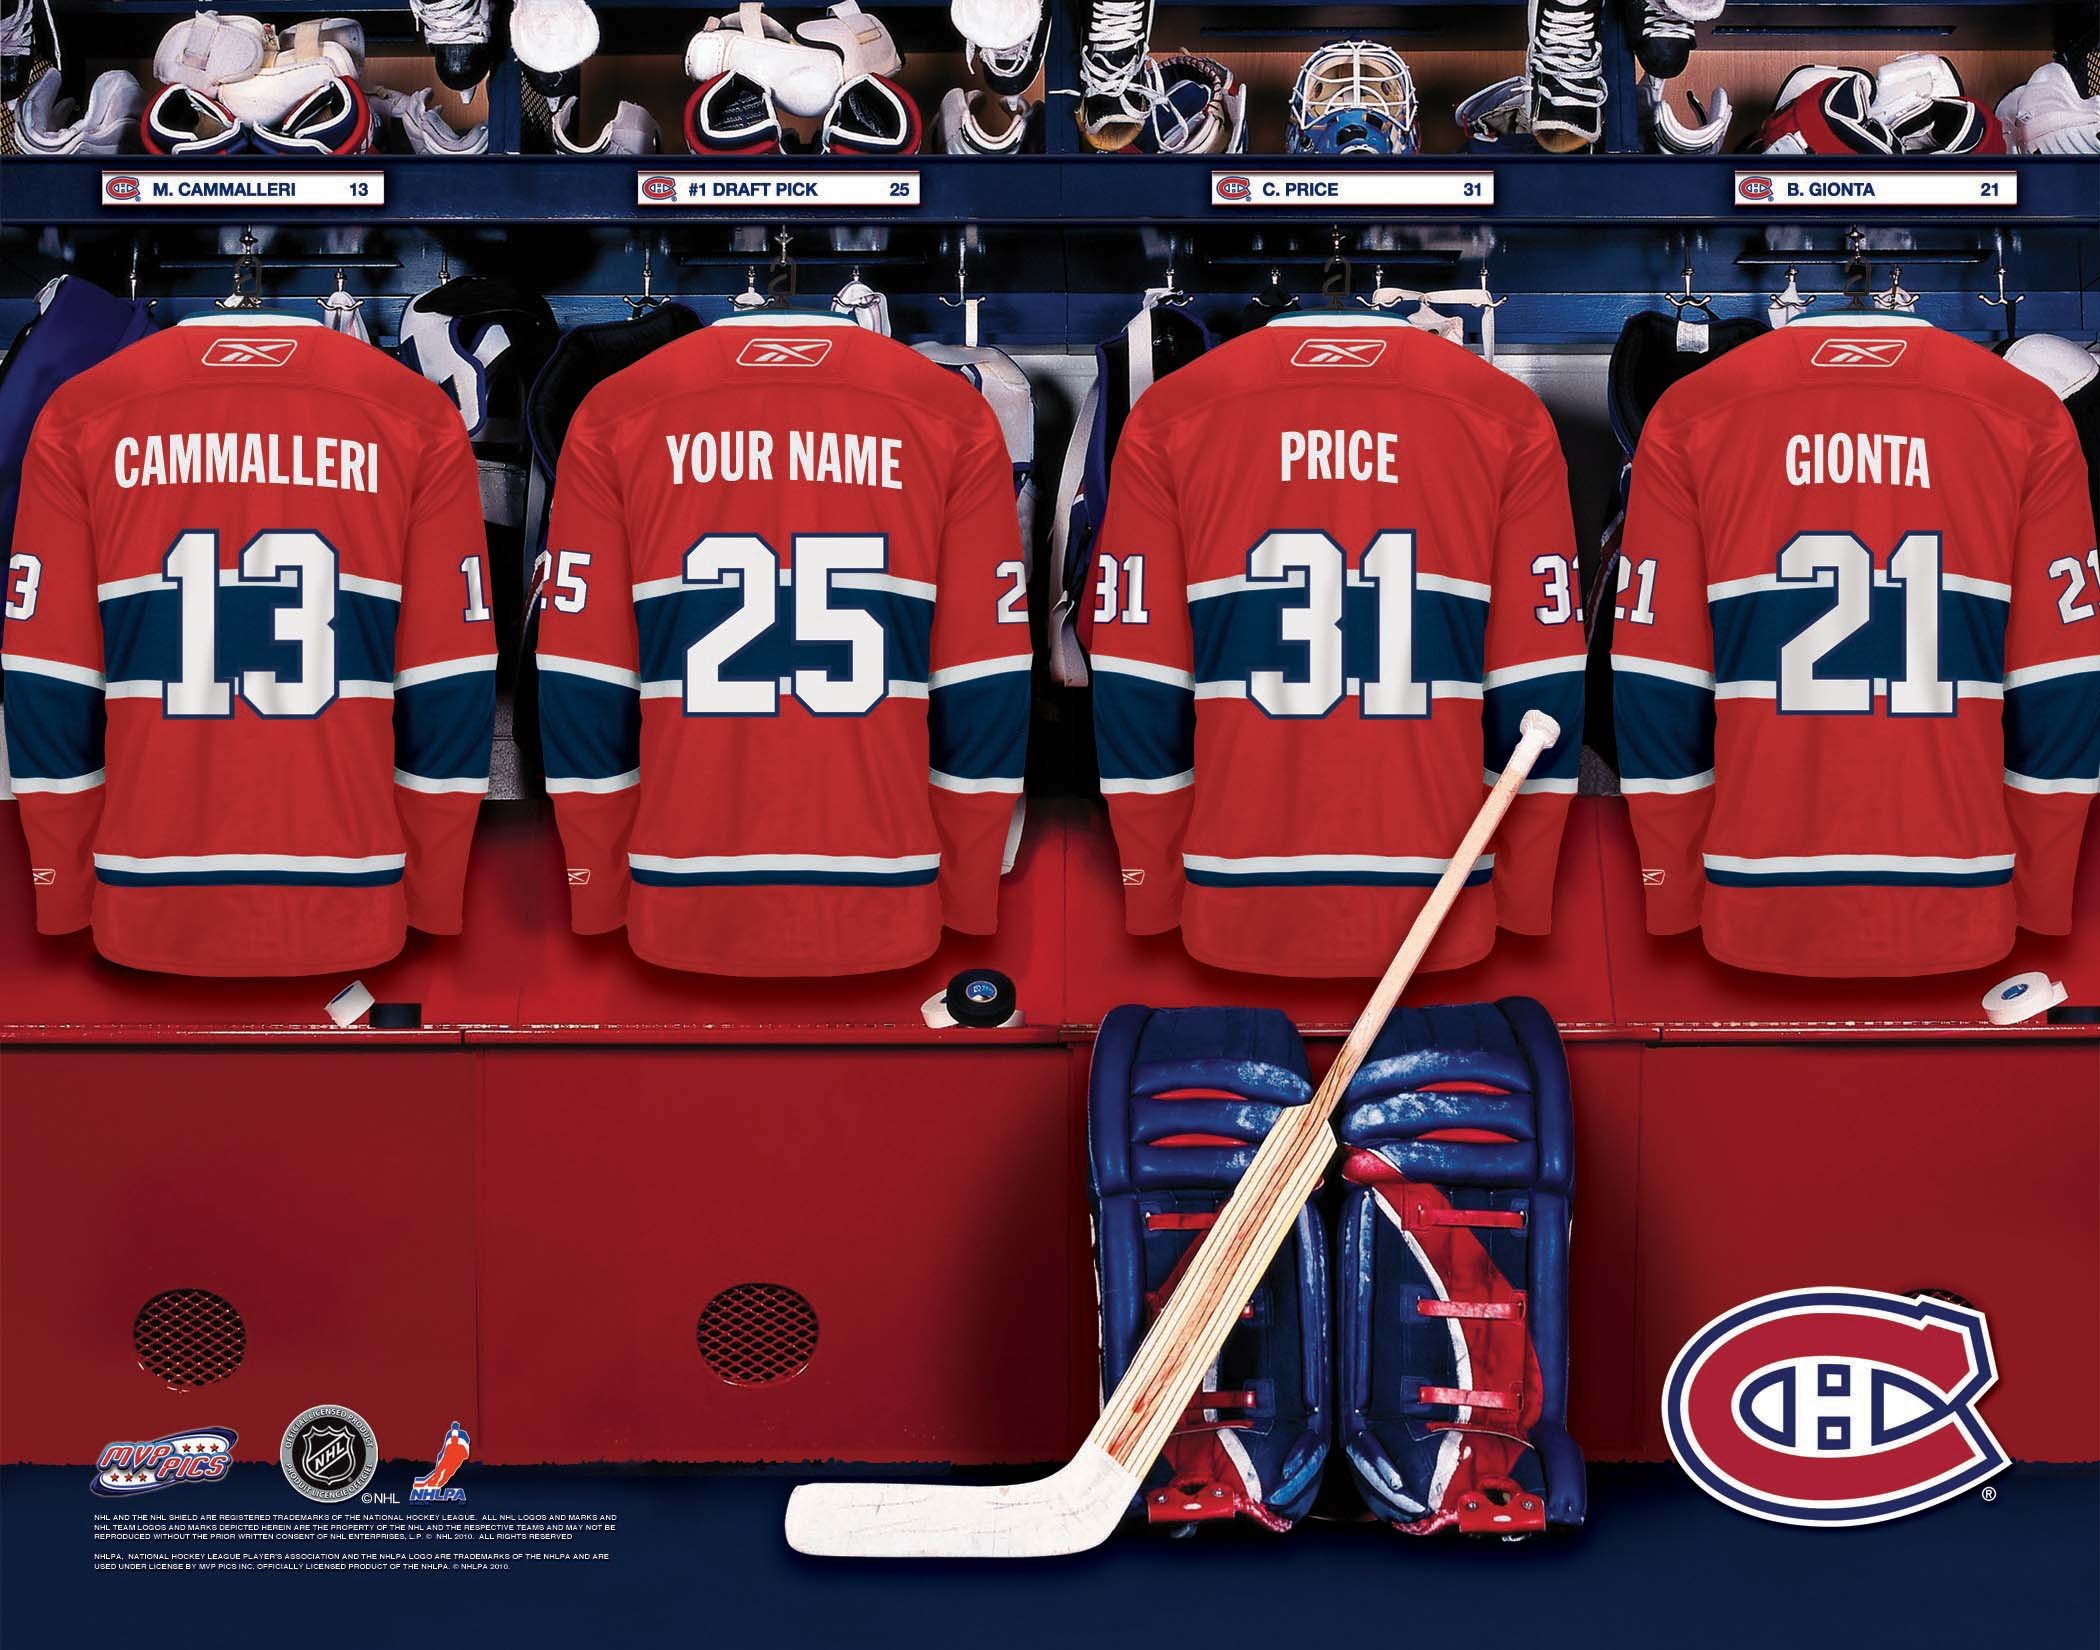 MONTREAL CANADIENS Nhl Hockey 42 Wallpaper